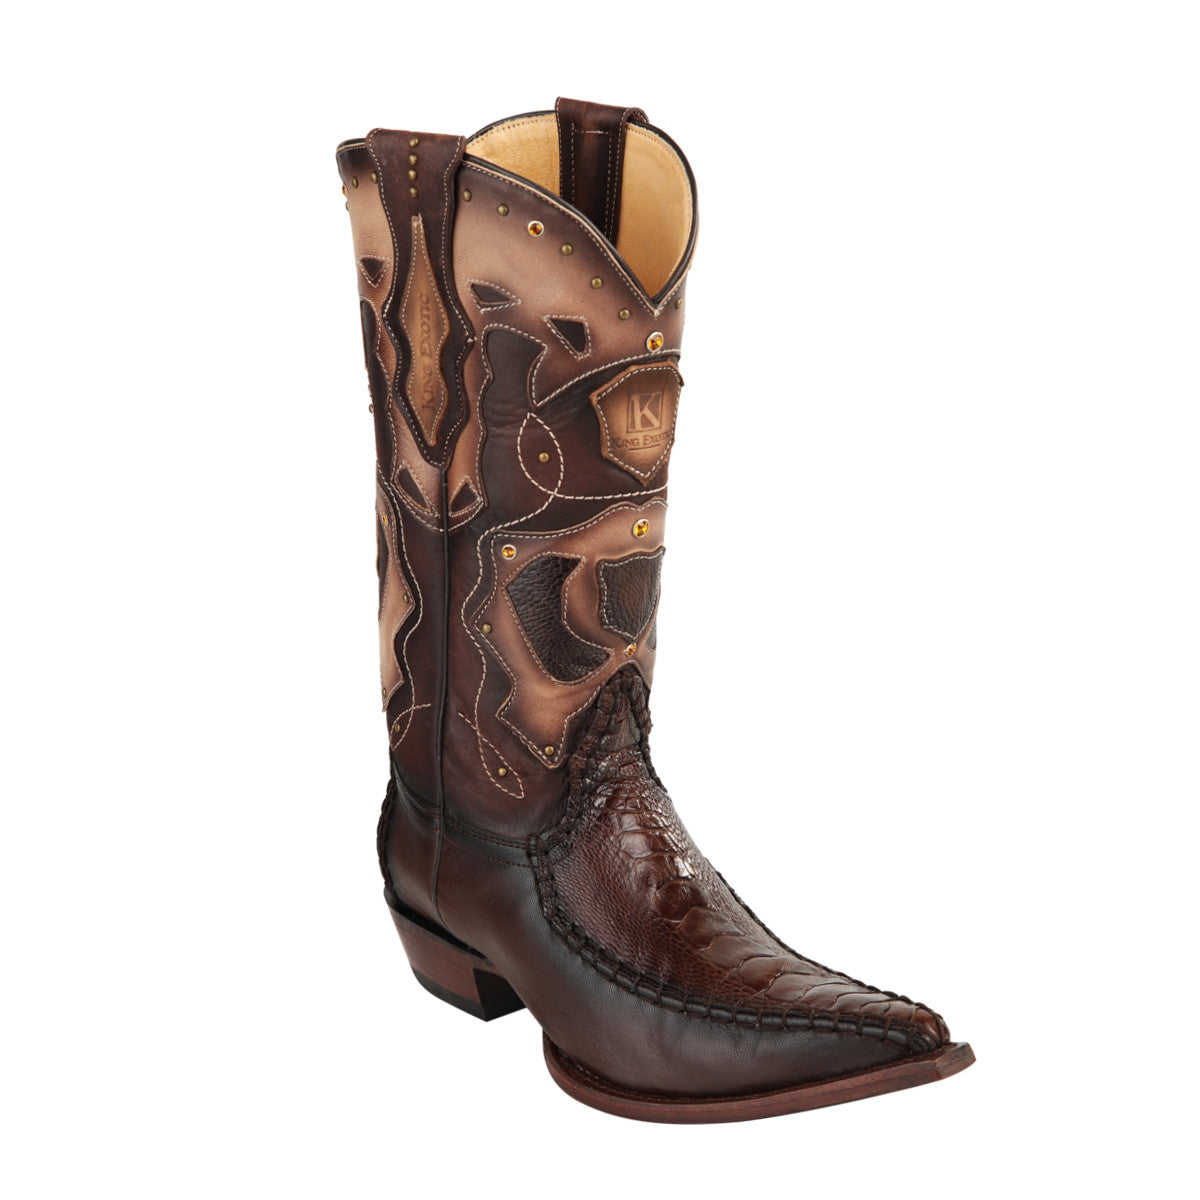 King Exotic H95 3x Toe Ostrich Leg Stitched - Brown